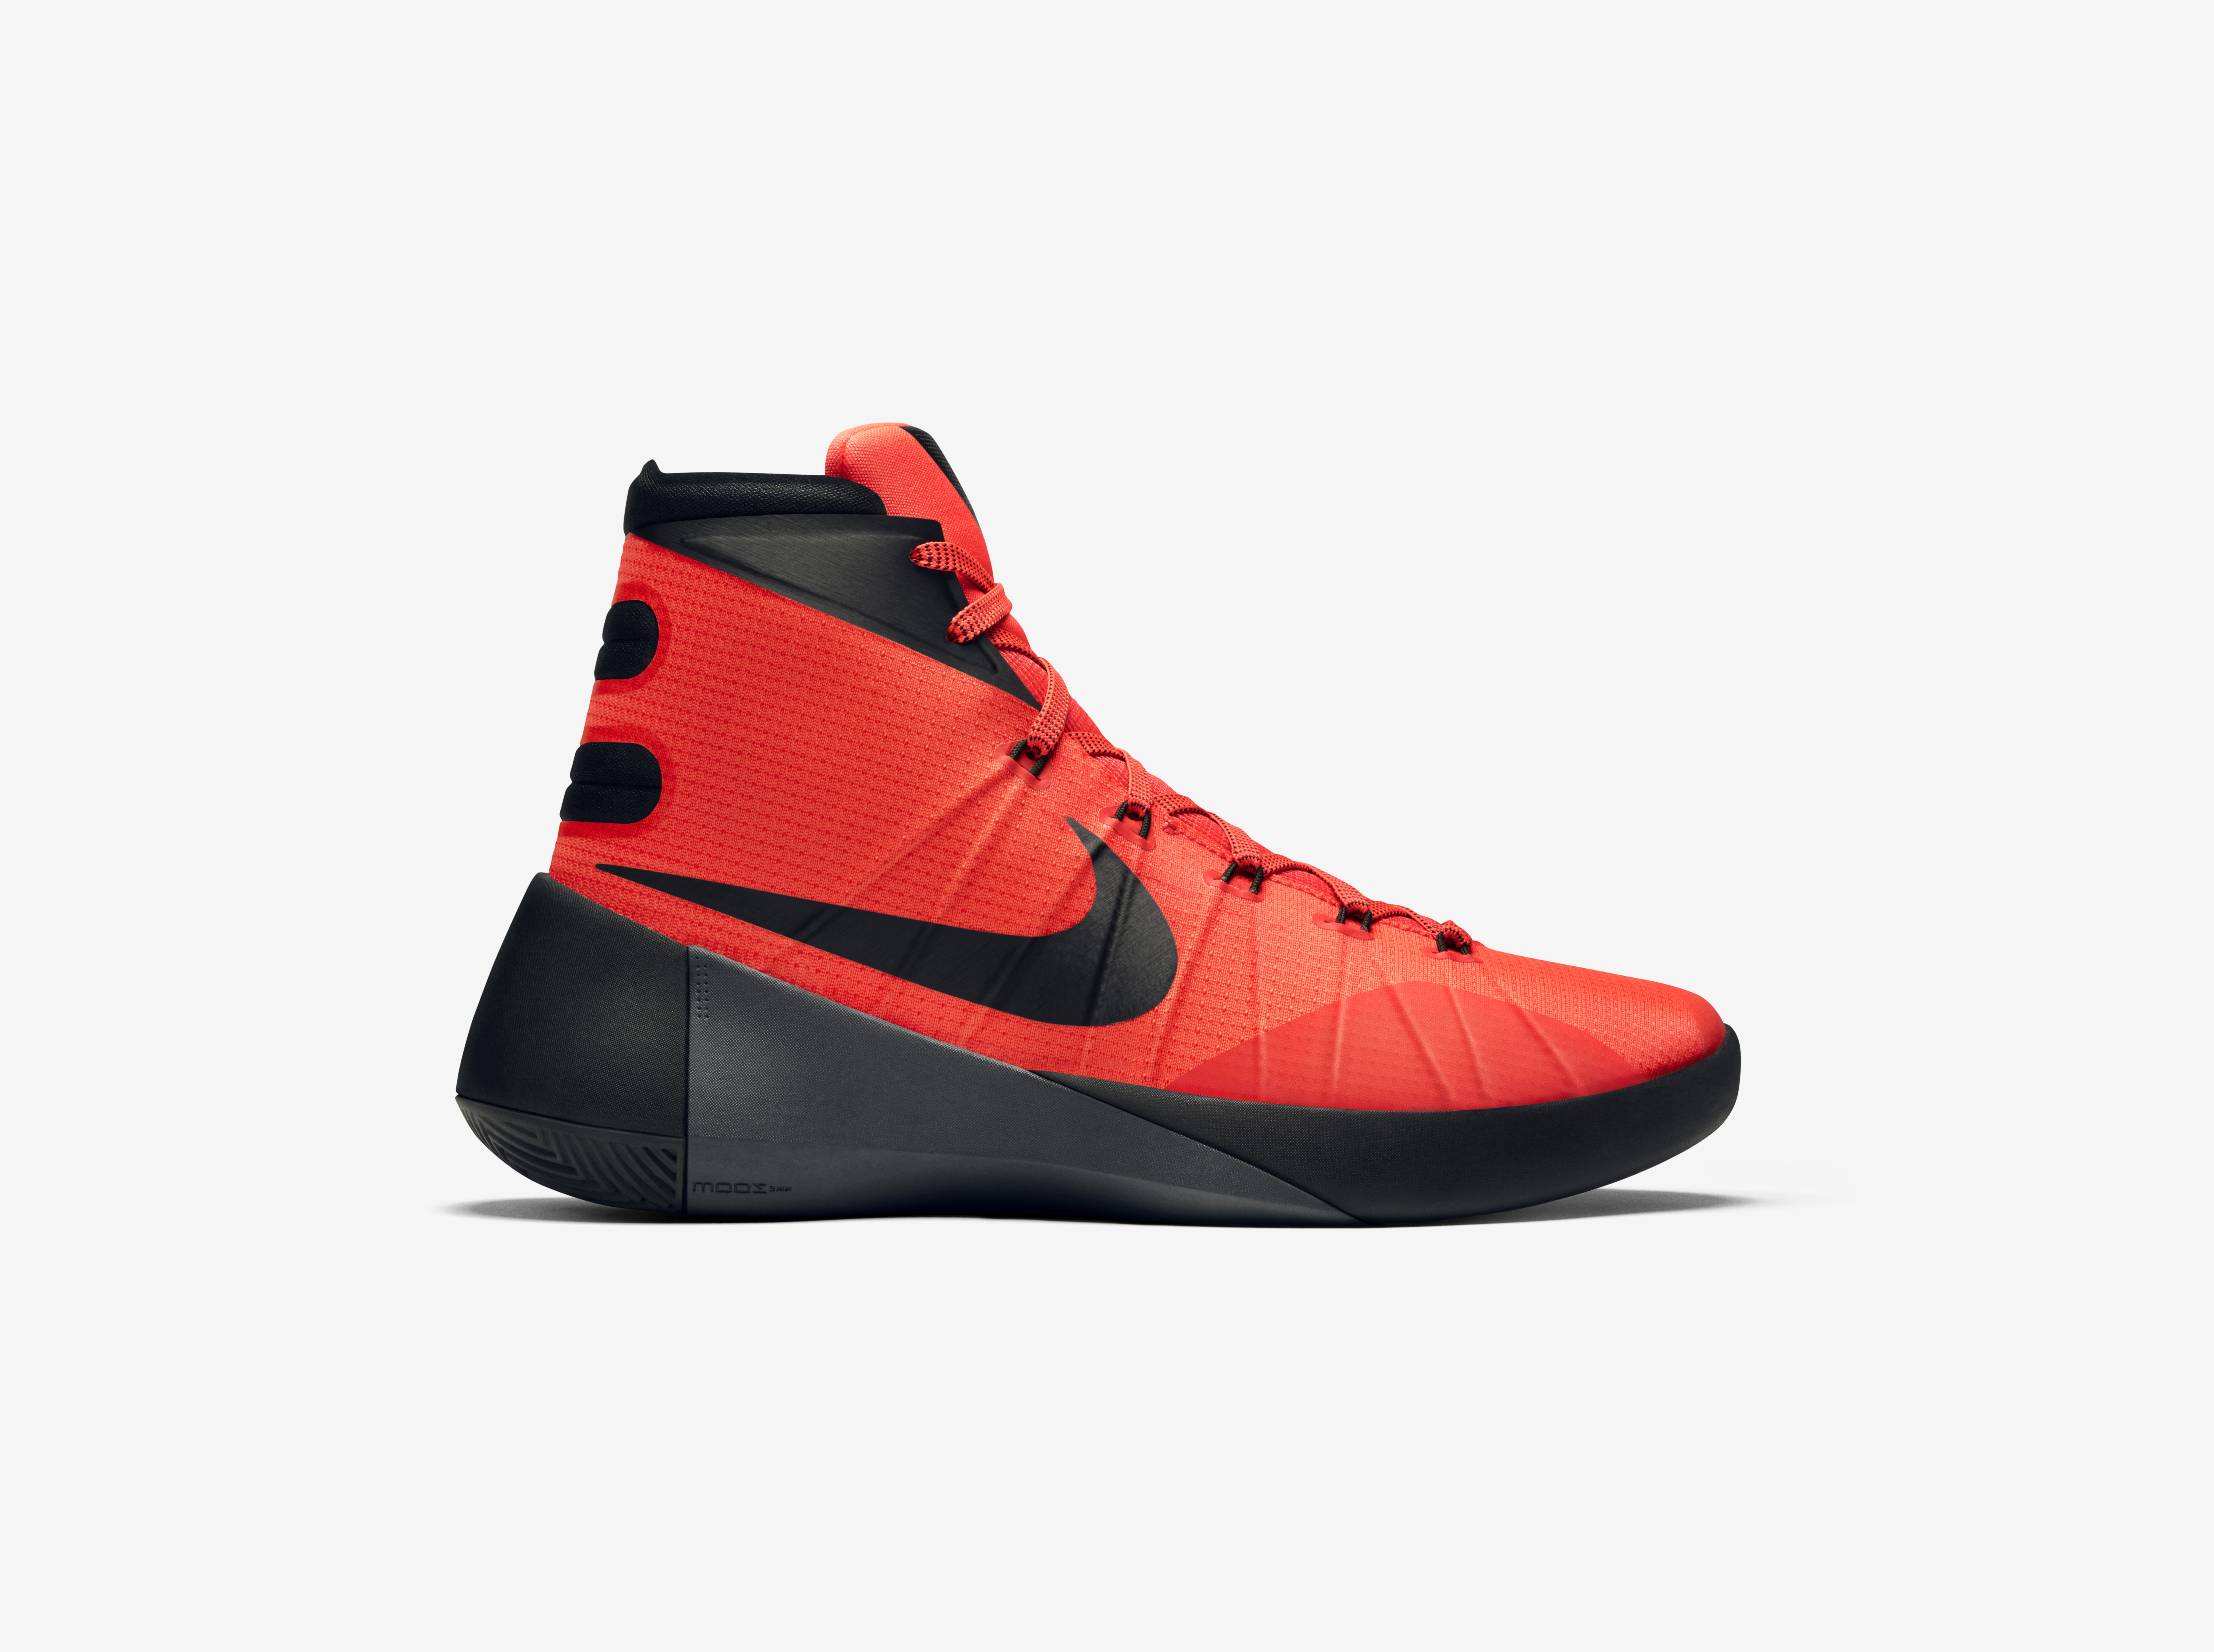 0d5aa7570543 Nike Hyperdunk 2015   Nike Sneakers Online at Best Prices ...